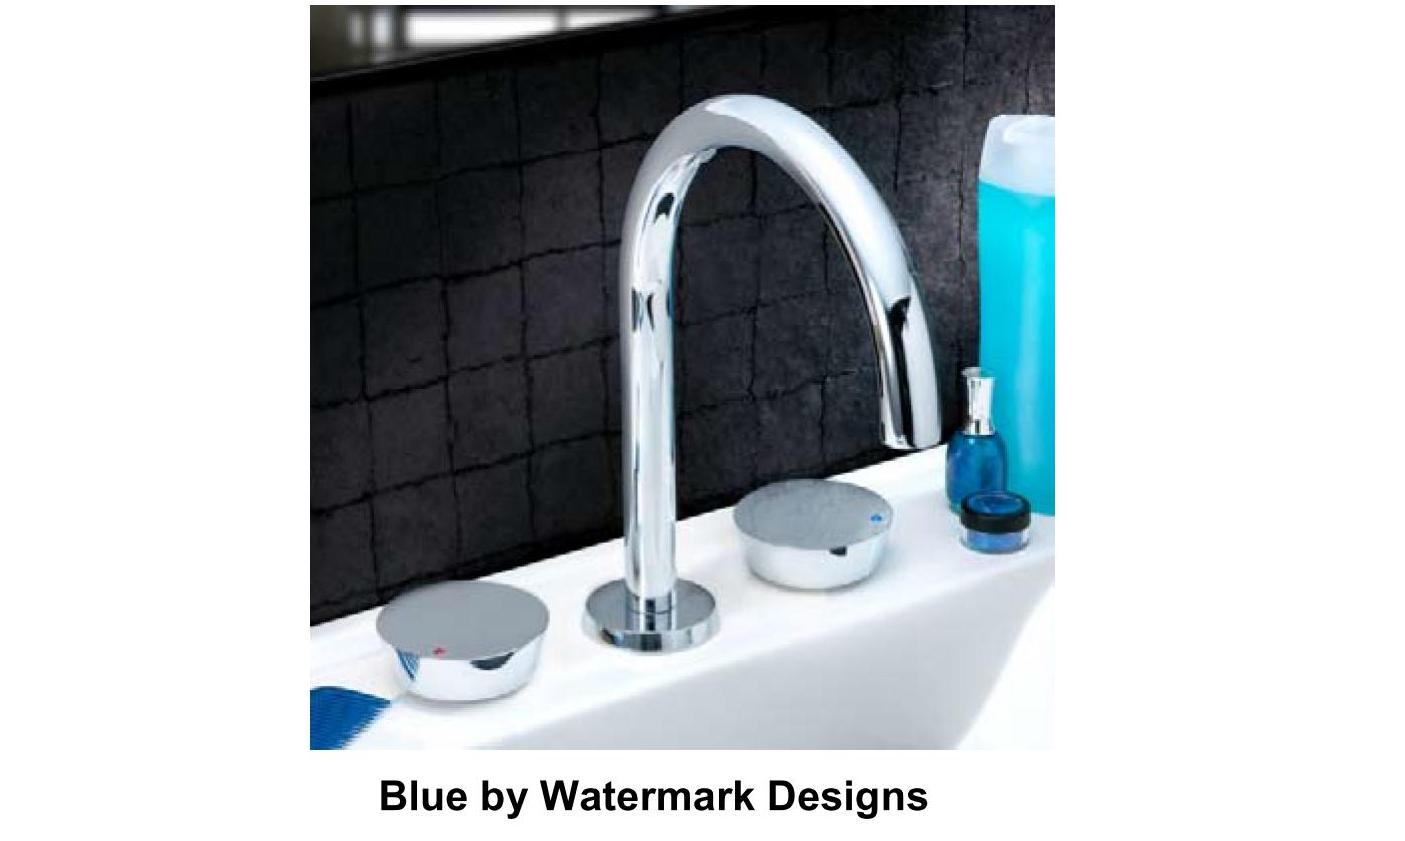 Hooked On Hardware Watermark Designs Debuts Blue Faucet